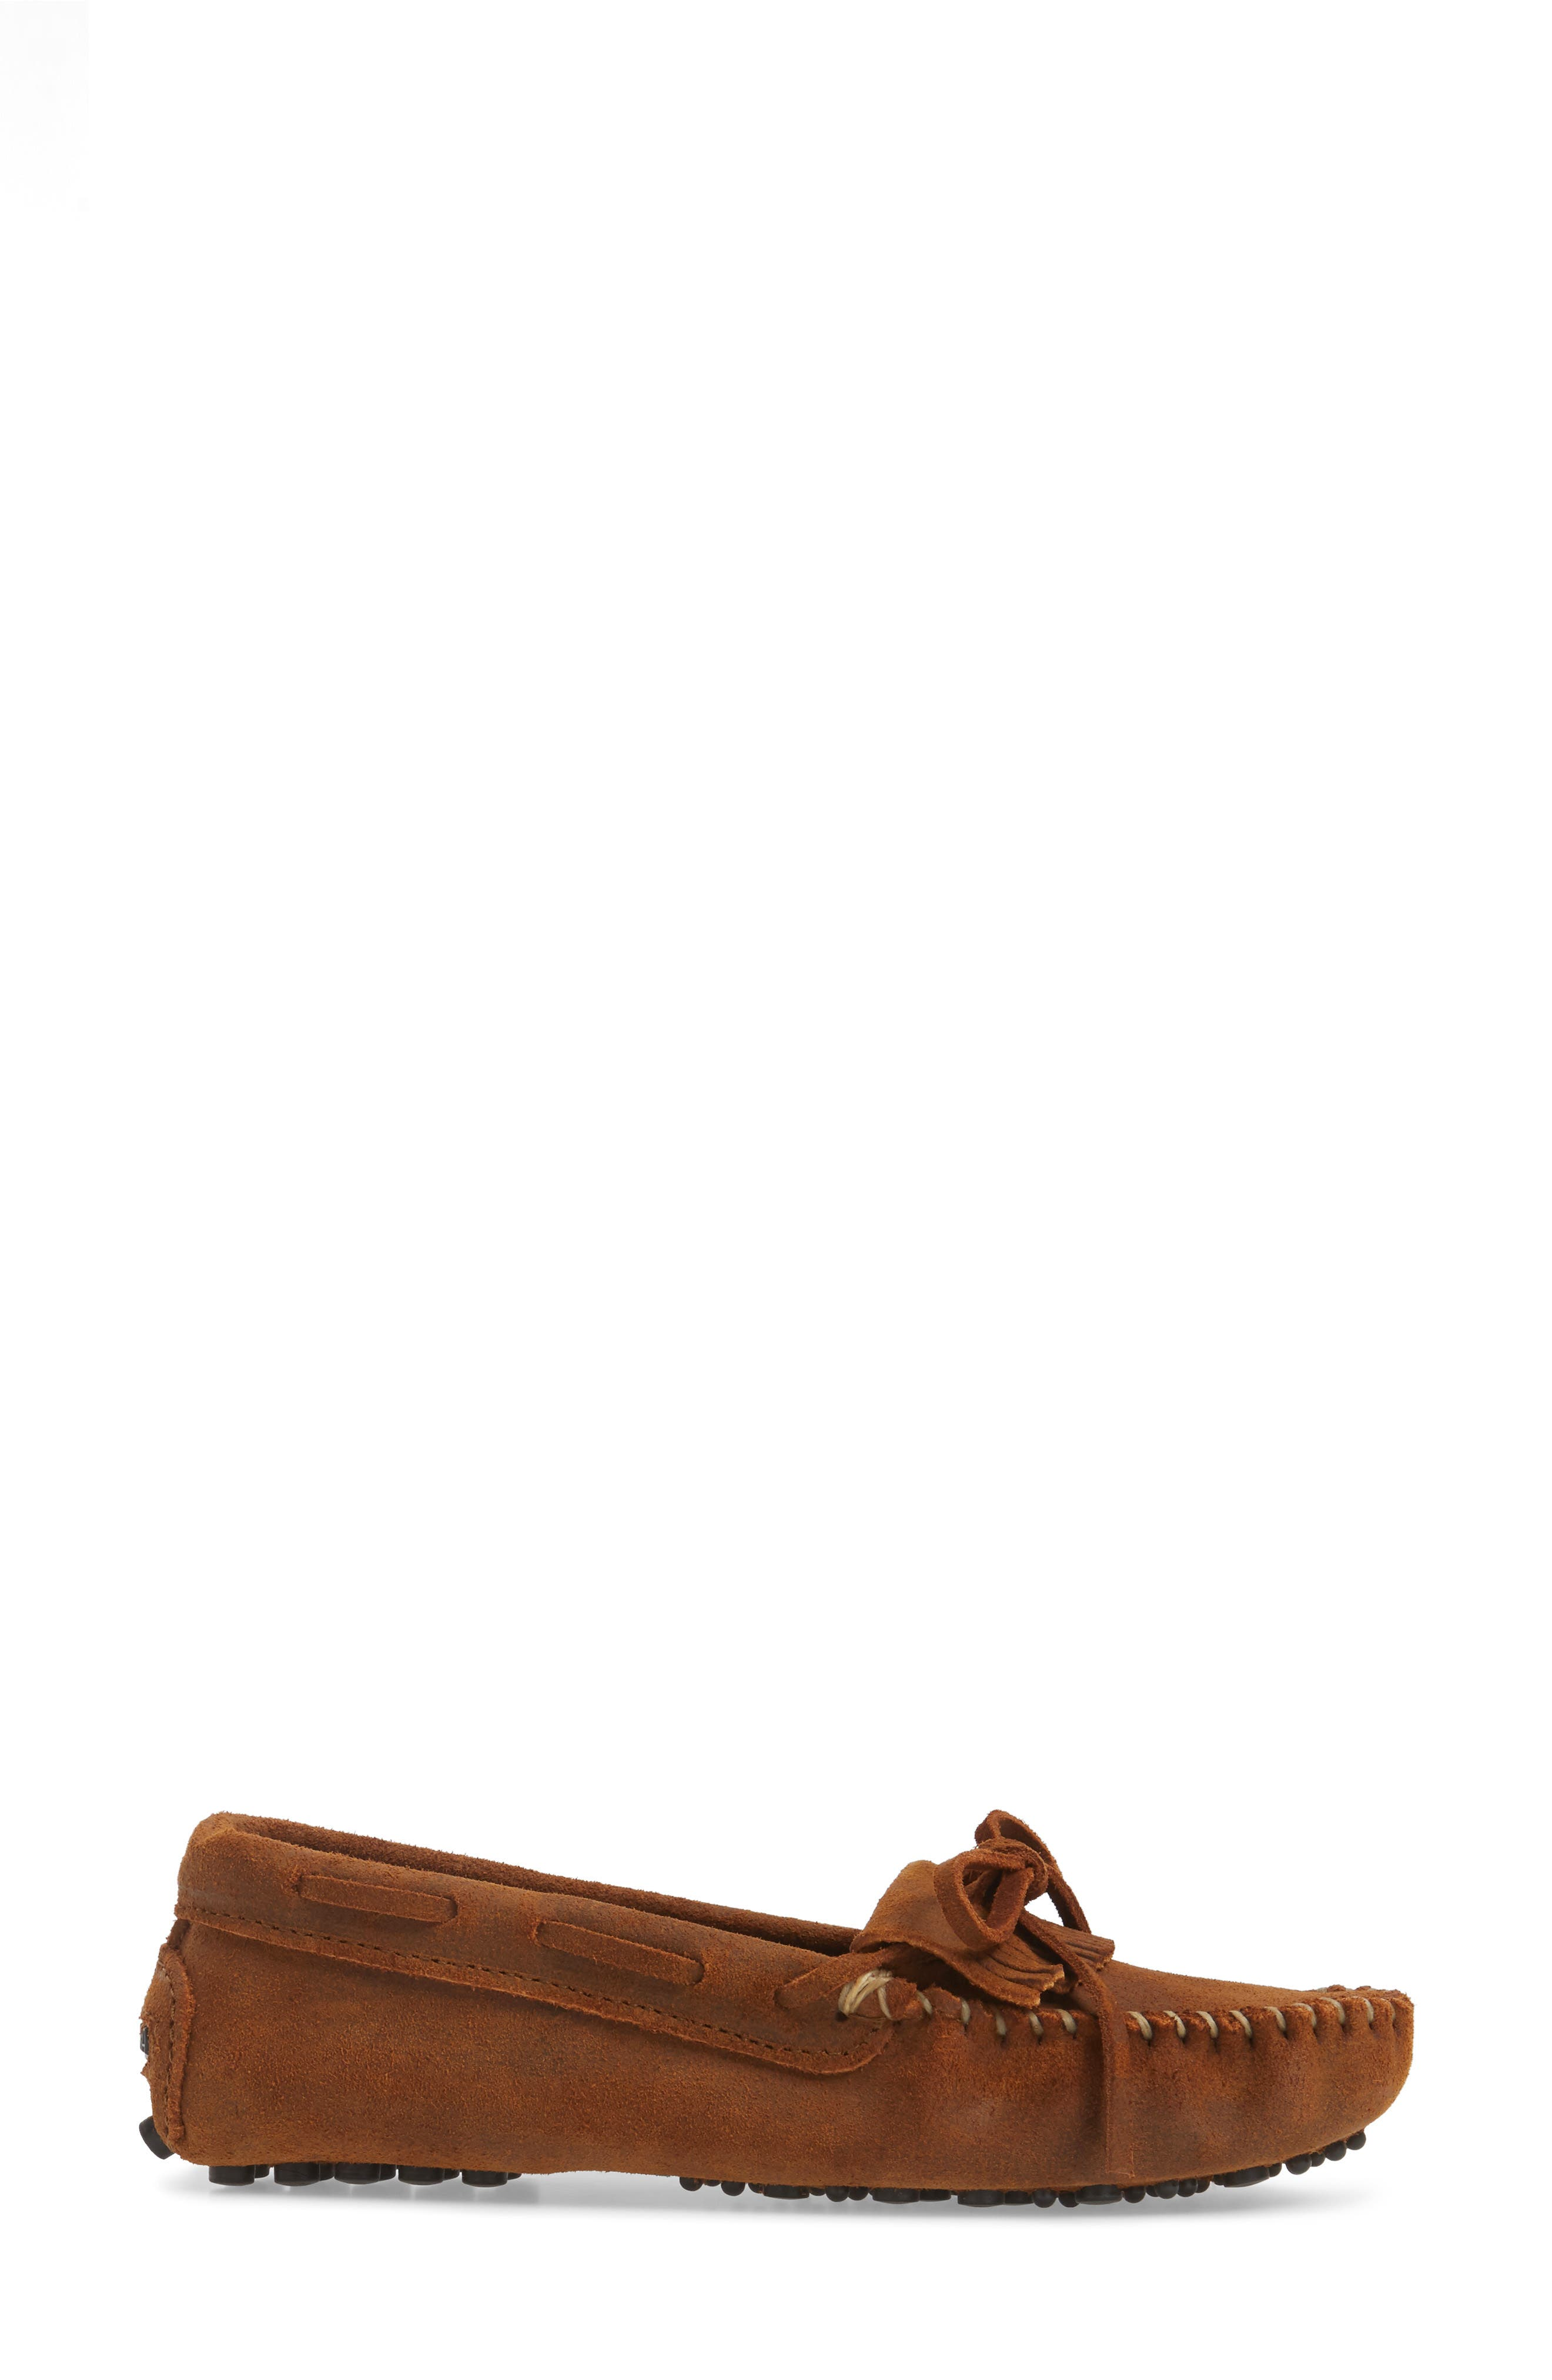 MINNETONKA, Kilty Driving Moccasin, Alternate thumbnail 3, color, BROWN RUFF